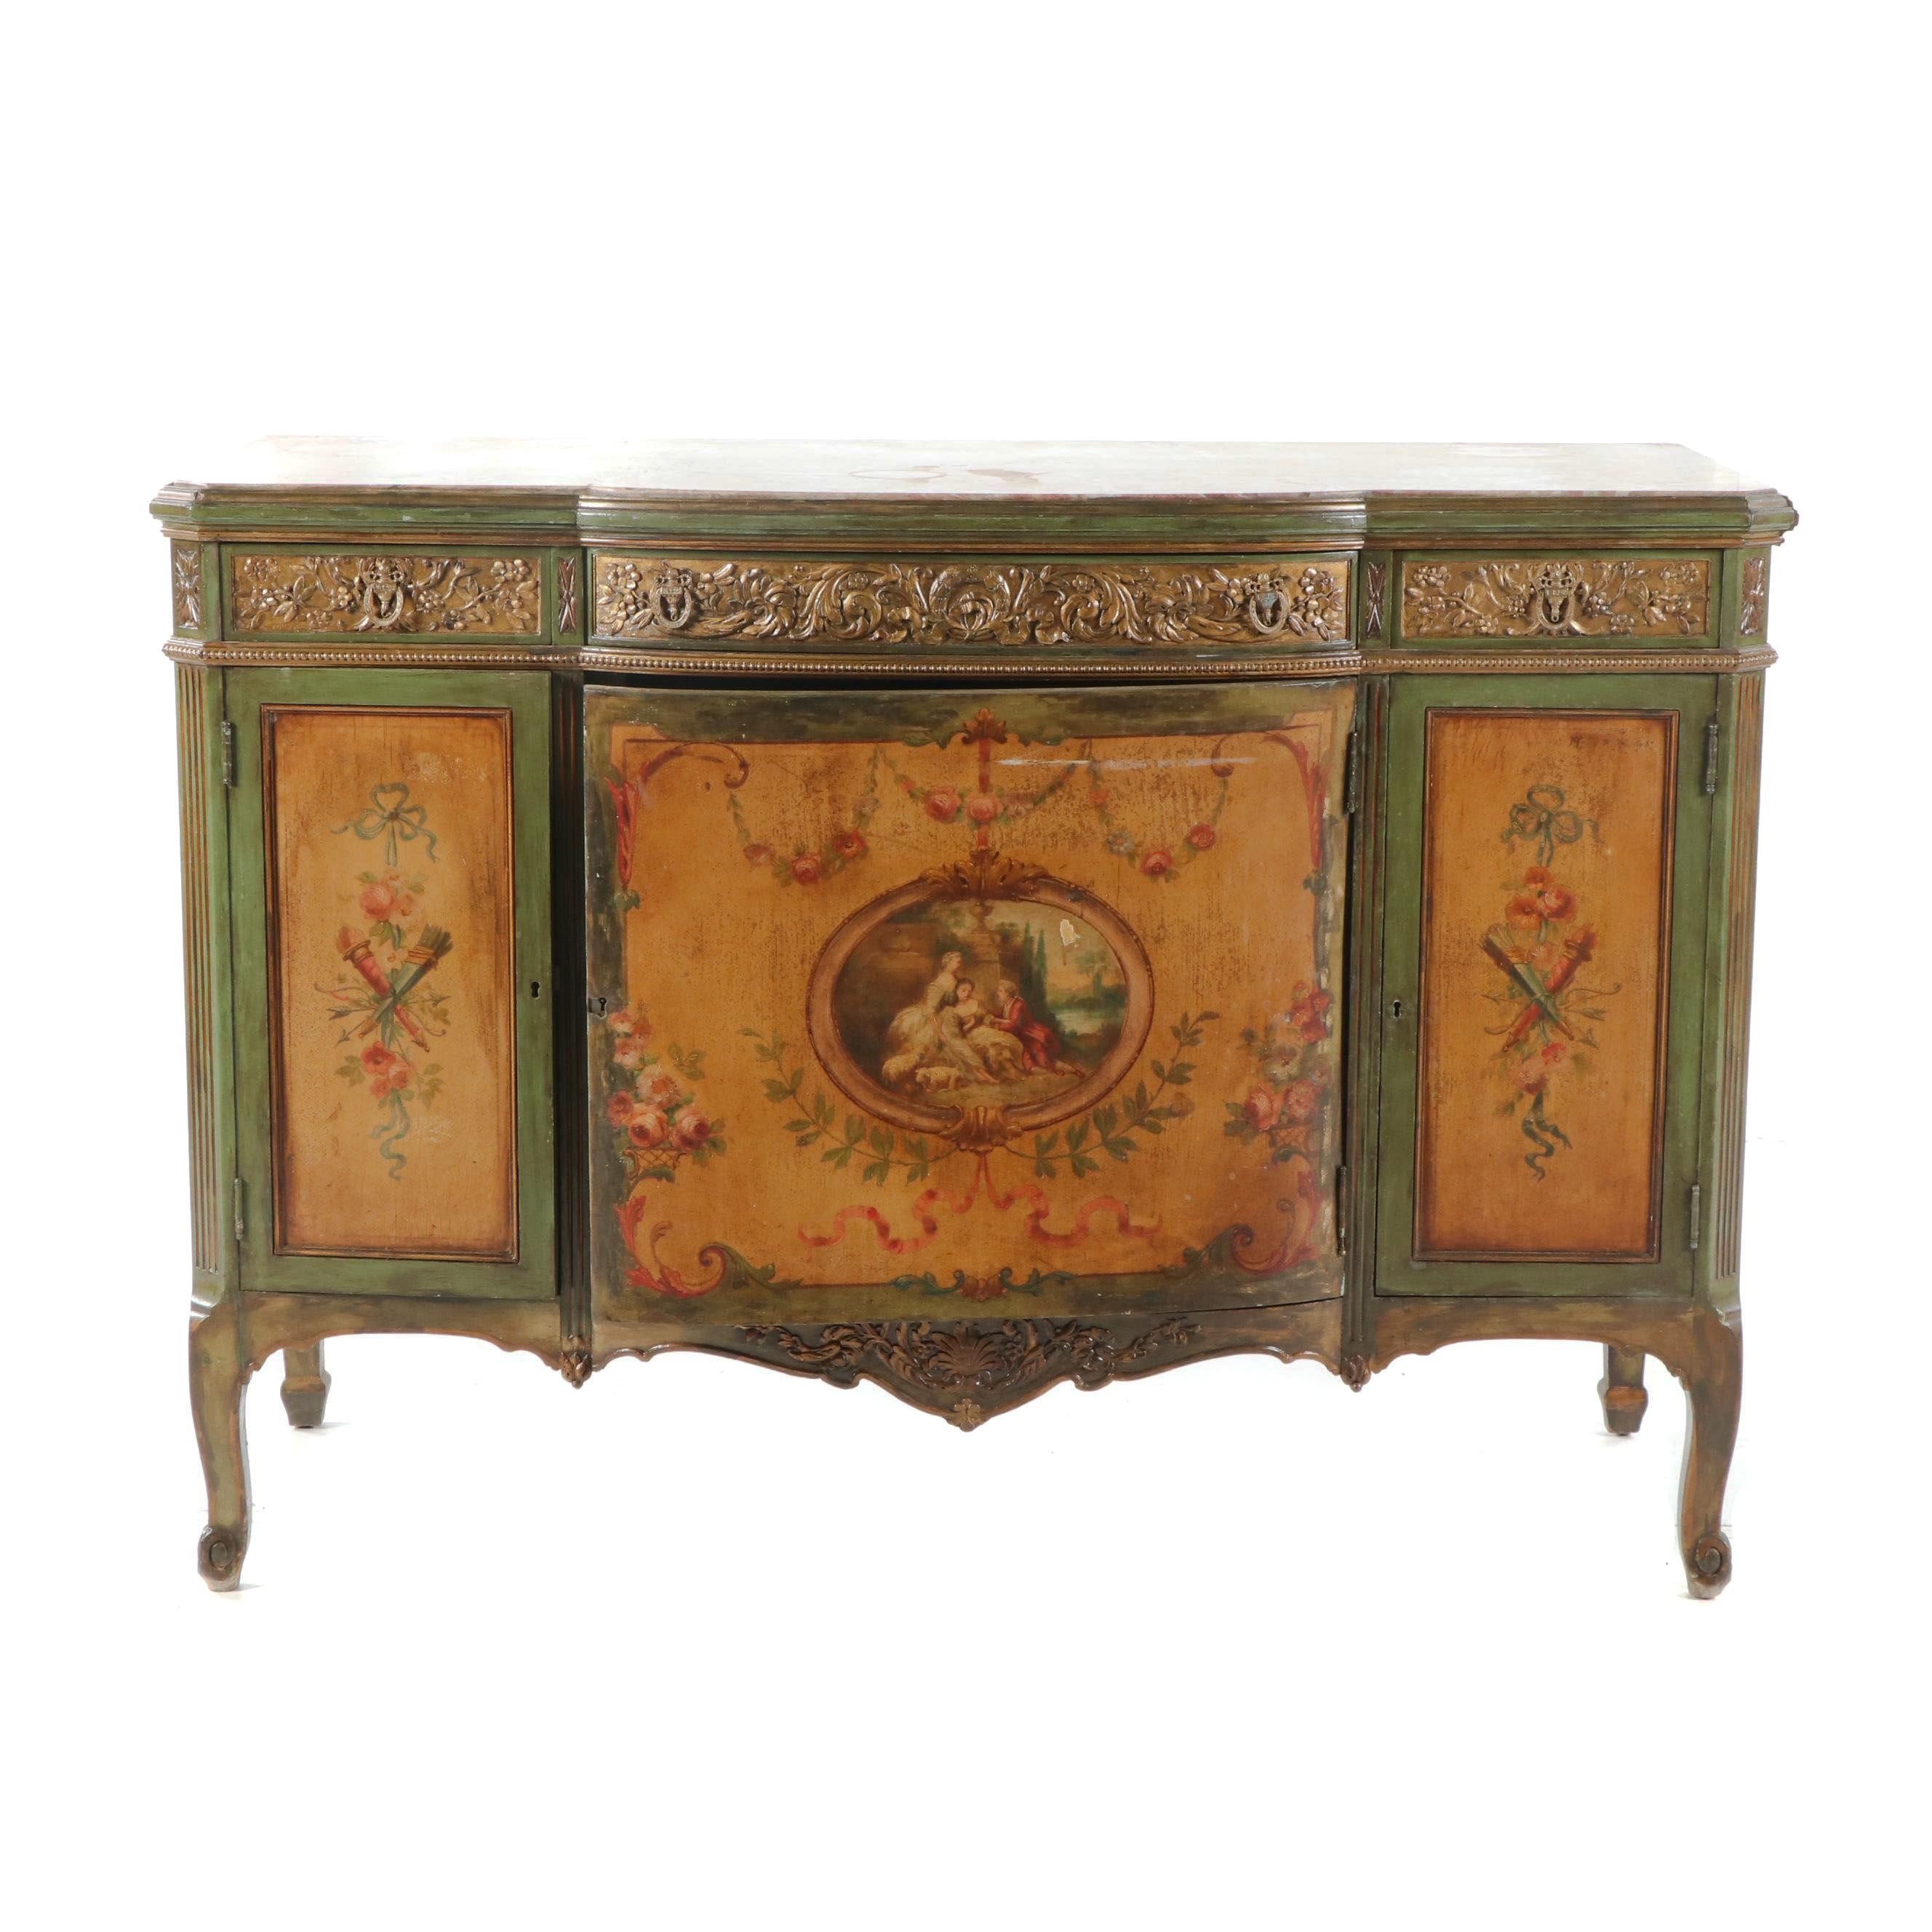 Louis XV Style Painted Wood and Stone Sideboard, Early 20th Century